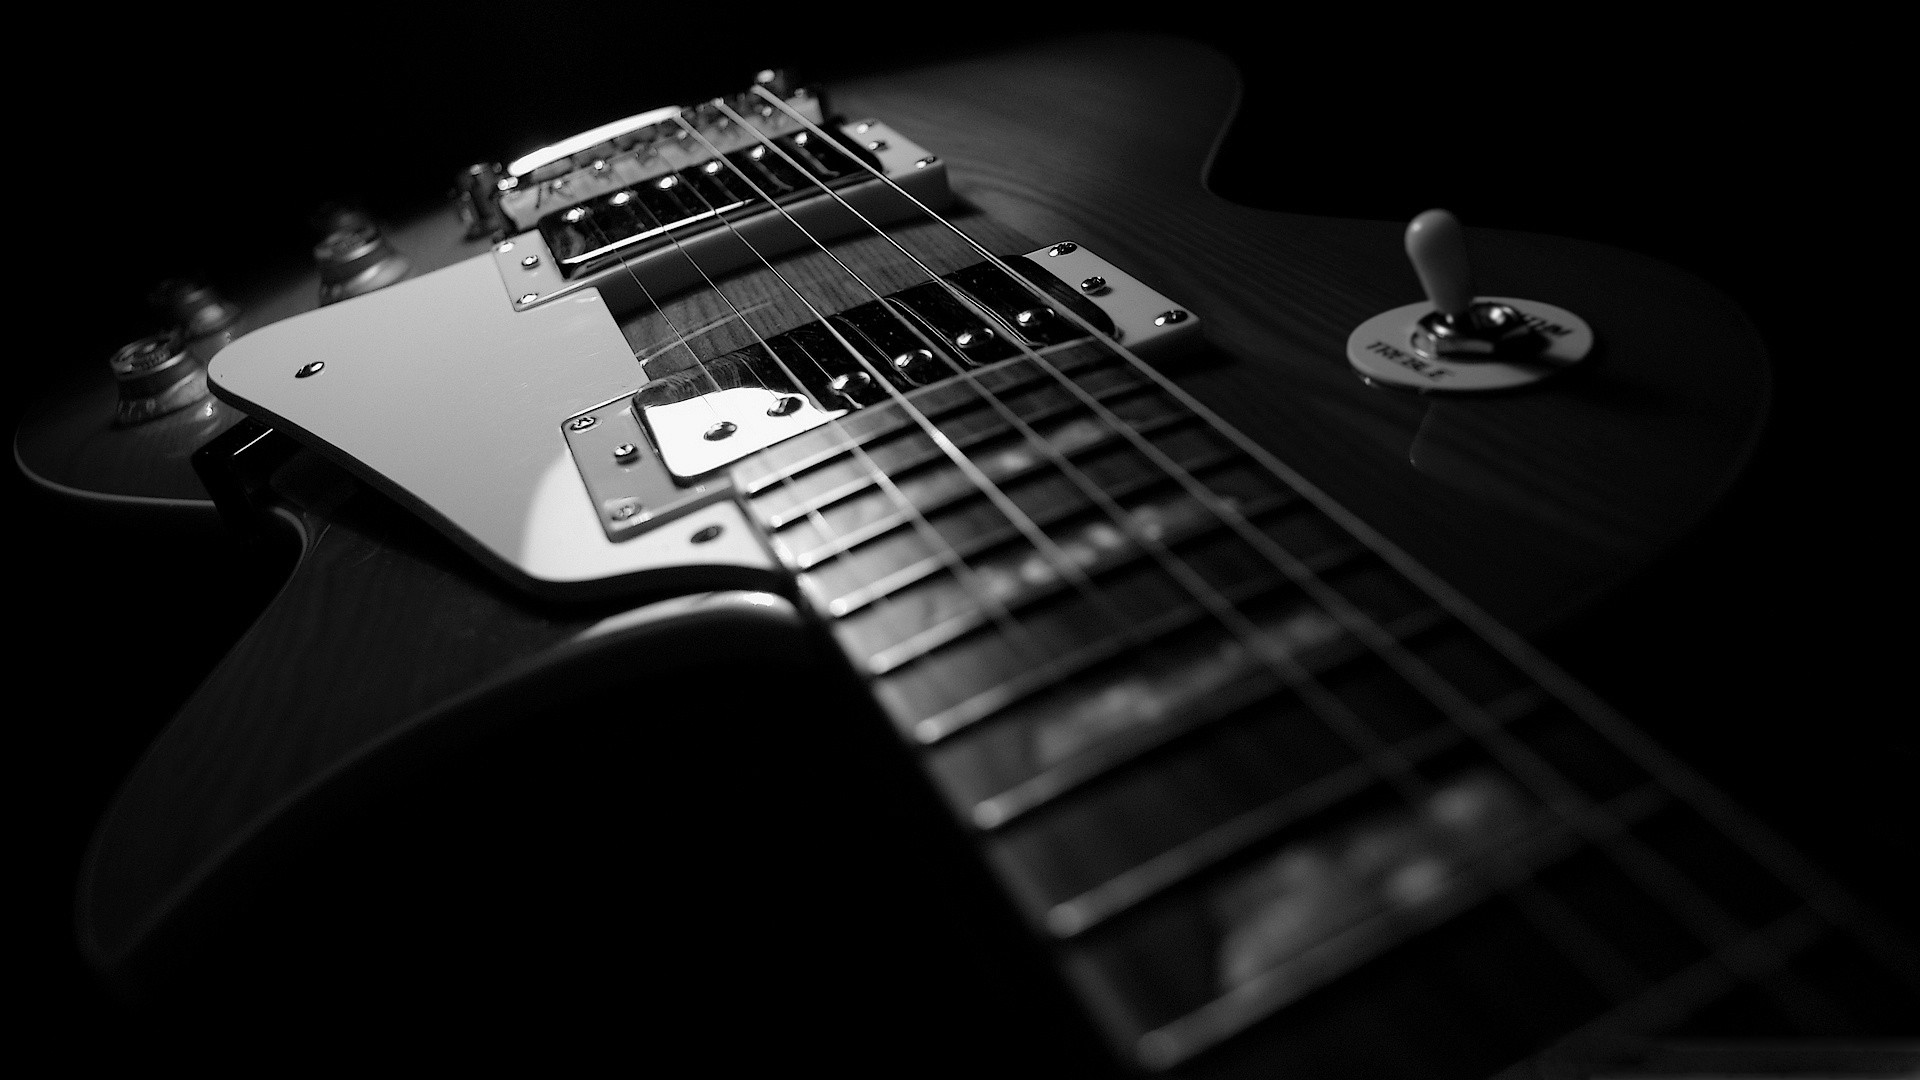 Guitar Wallpaper PC